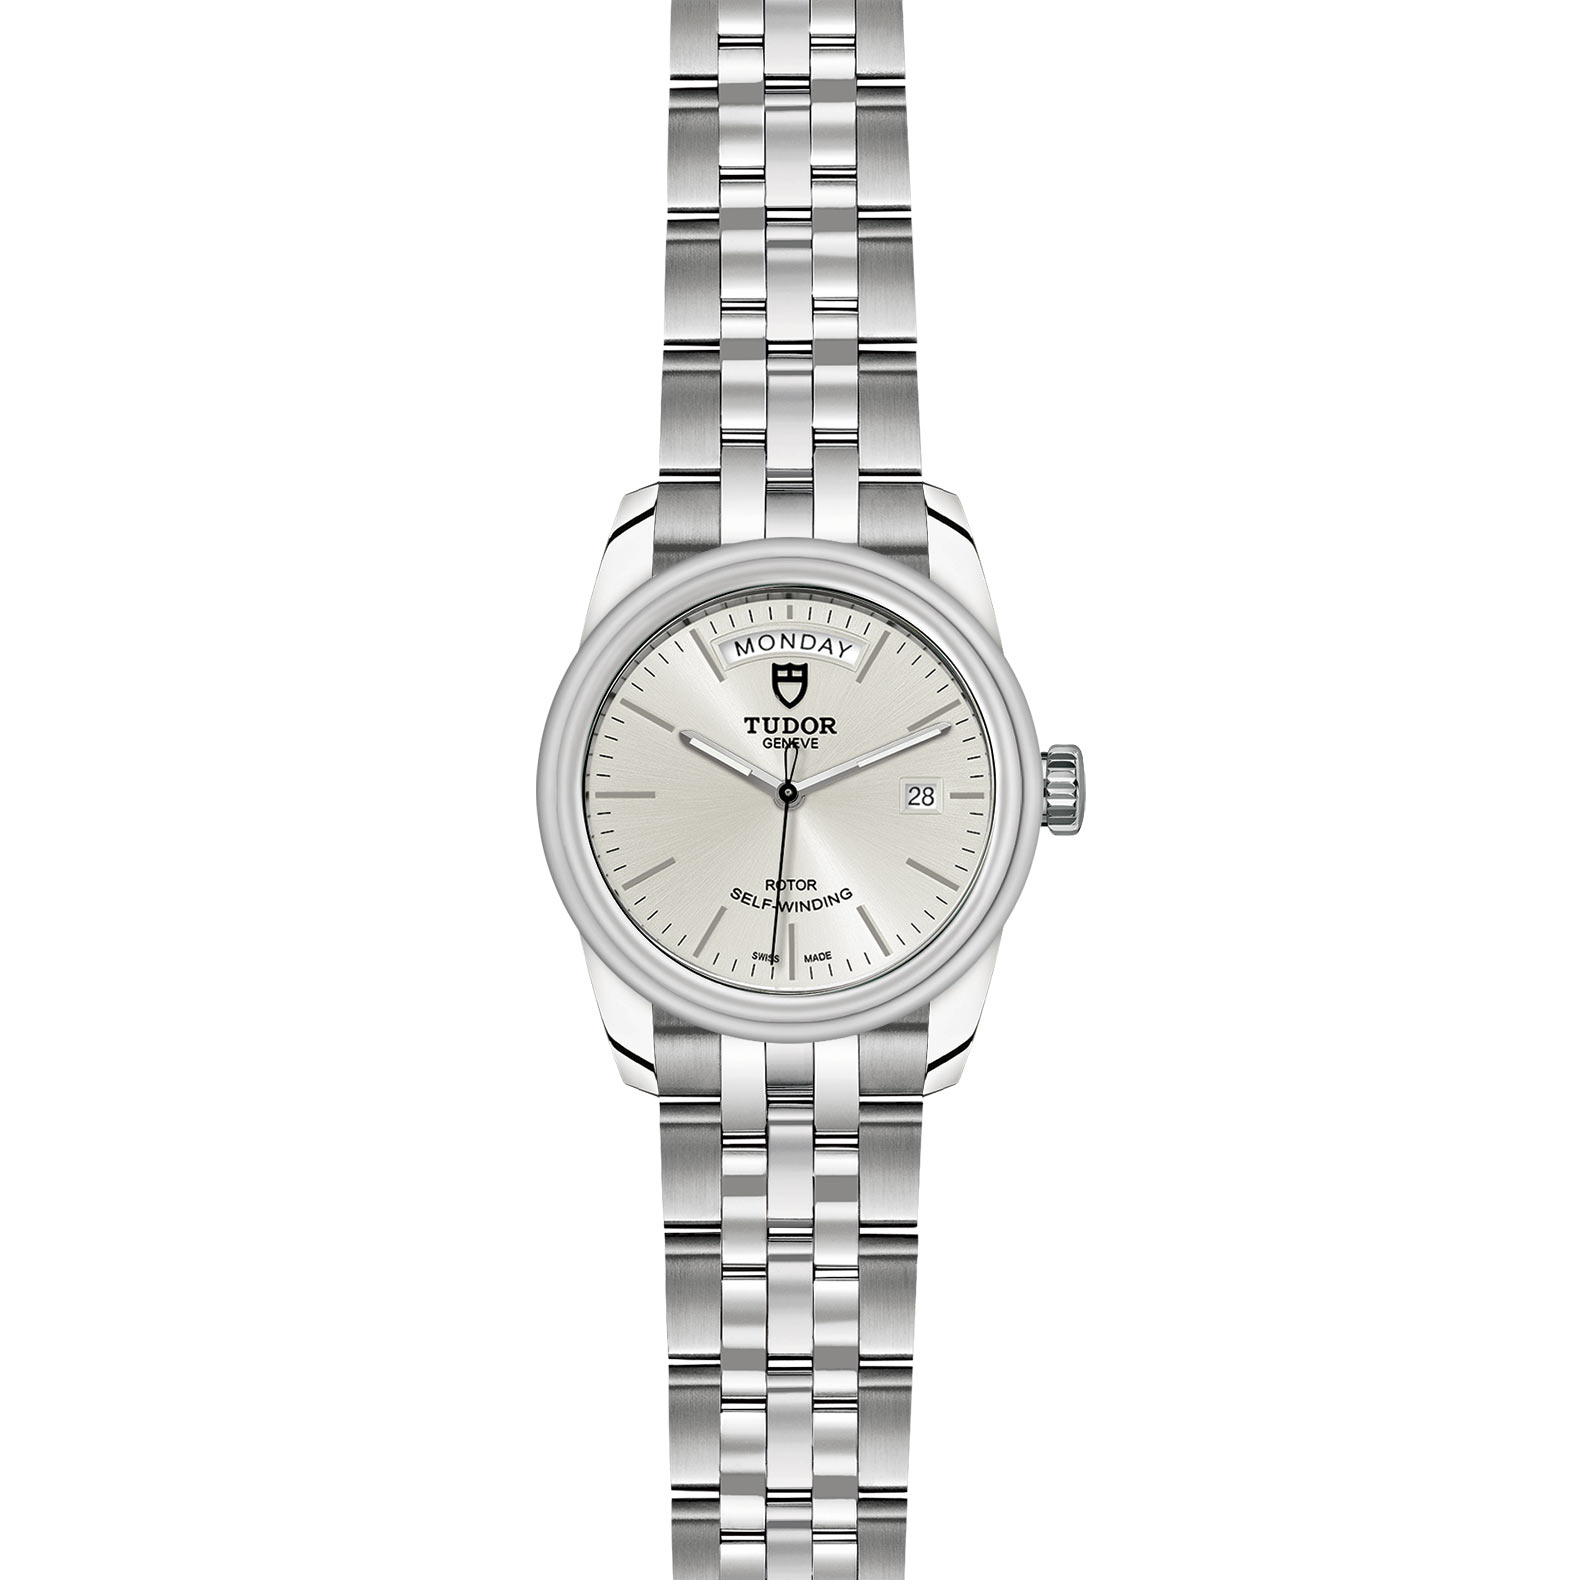 TUDOR Glamour Date Day M56000 0005 Frontfacing